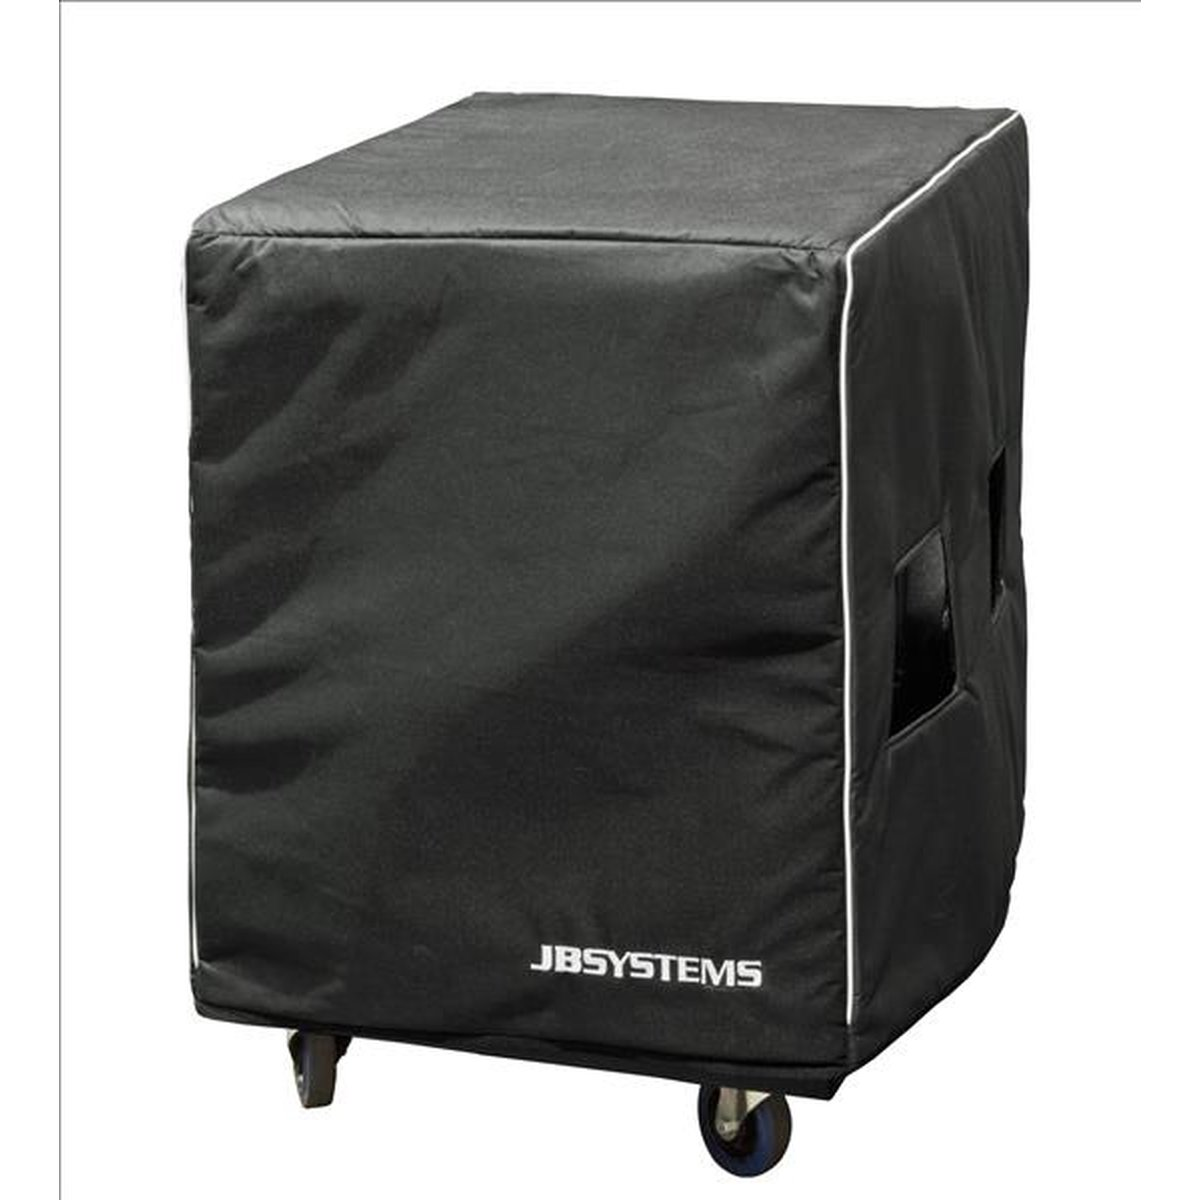 JB Systems Touring Bag - Vibe 18 SUB MkII